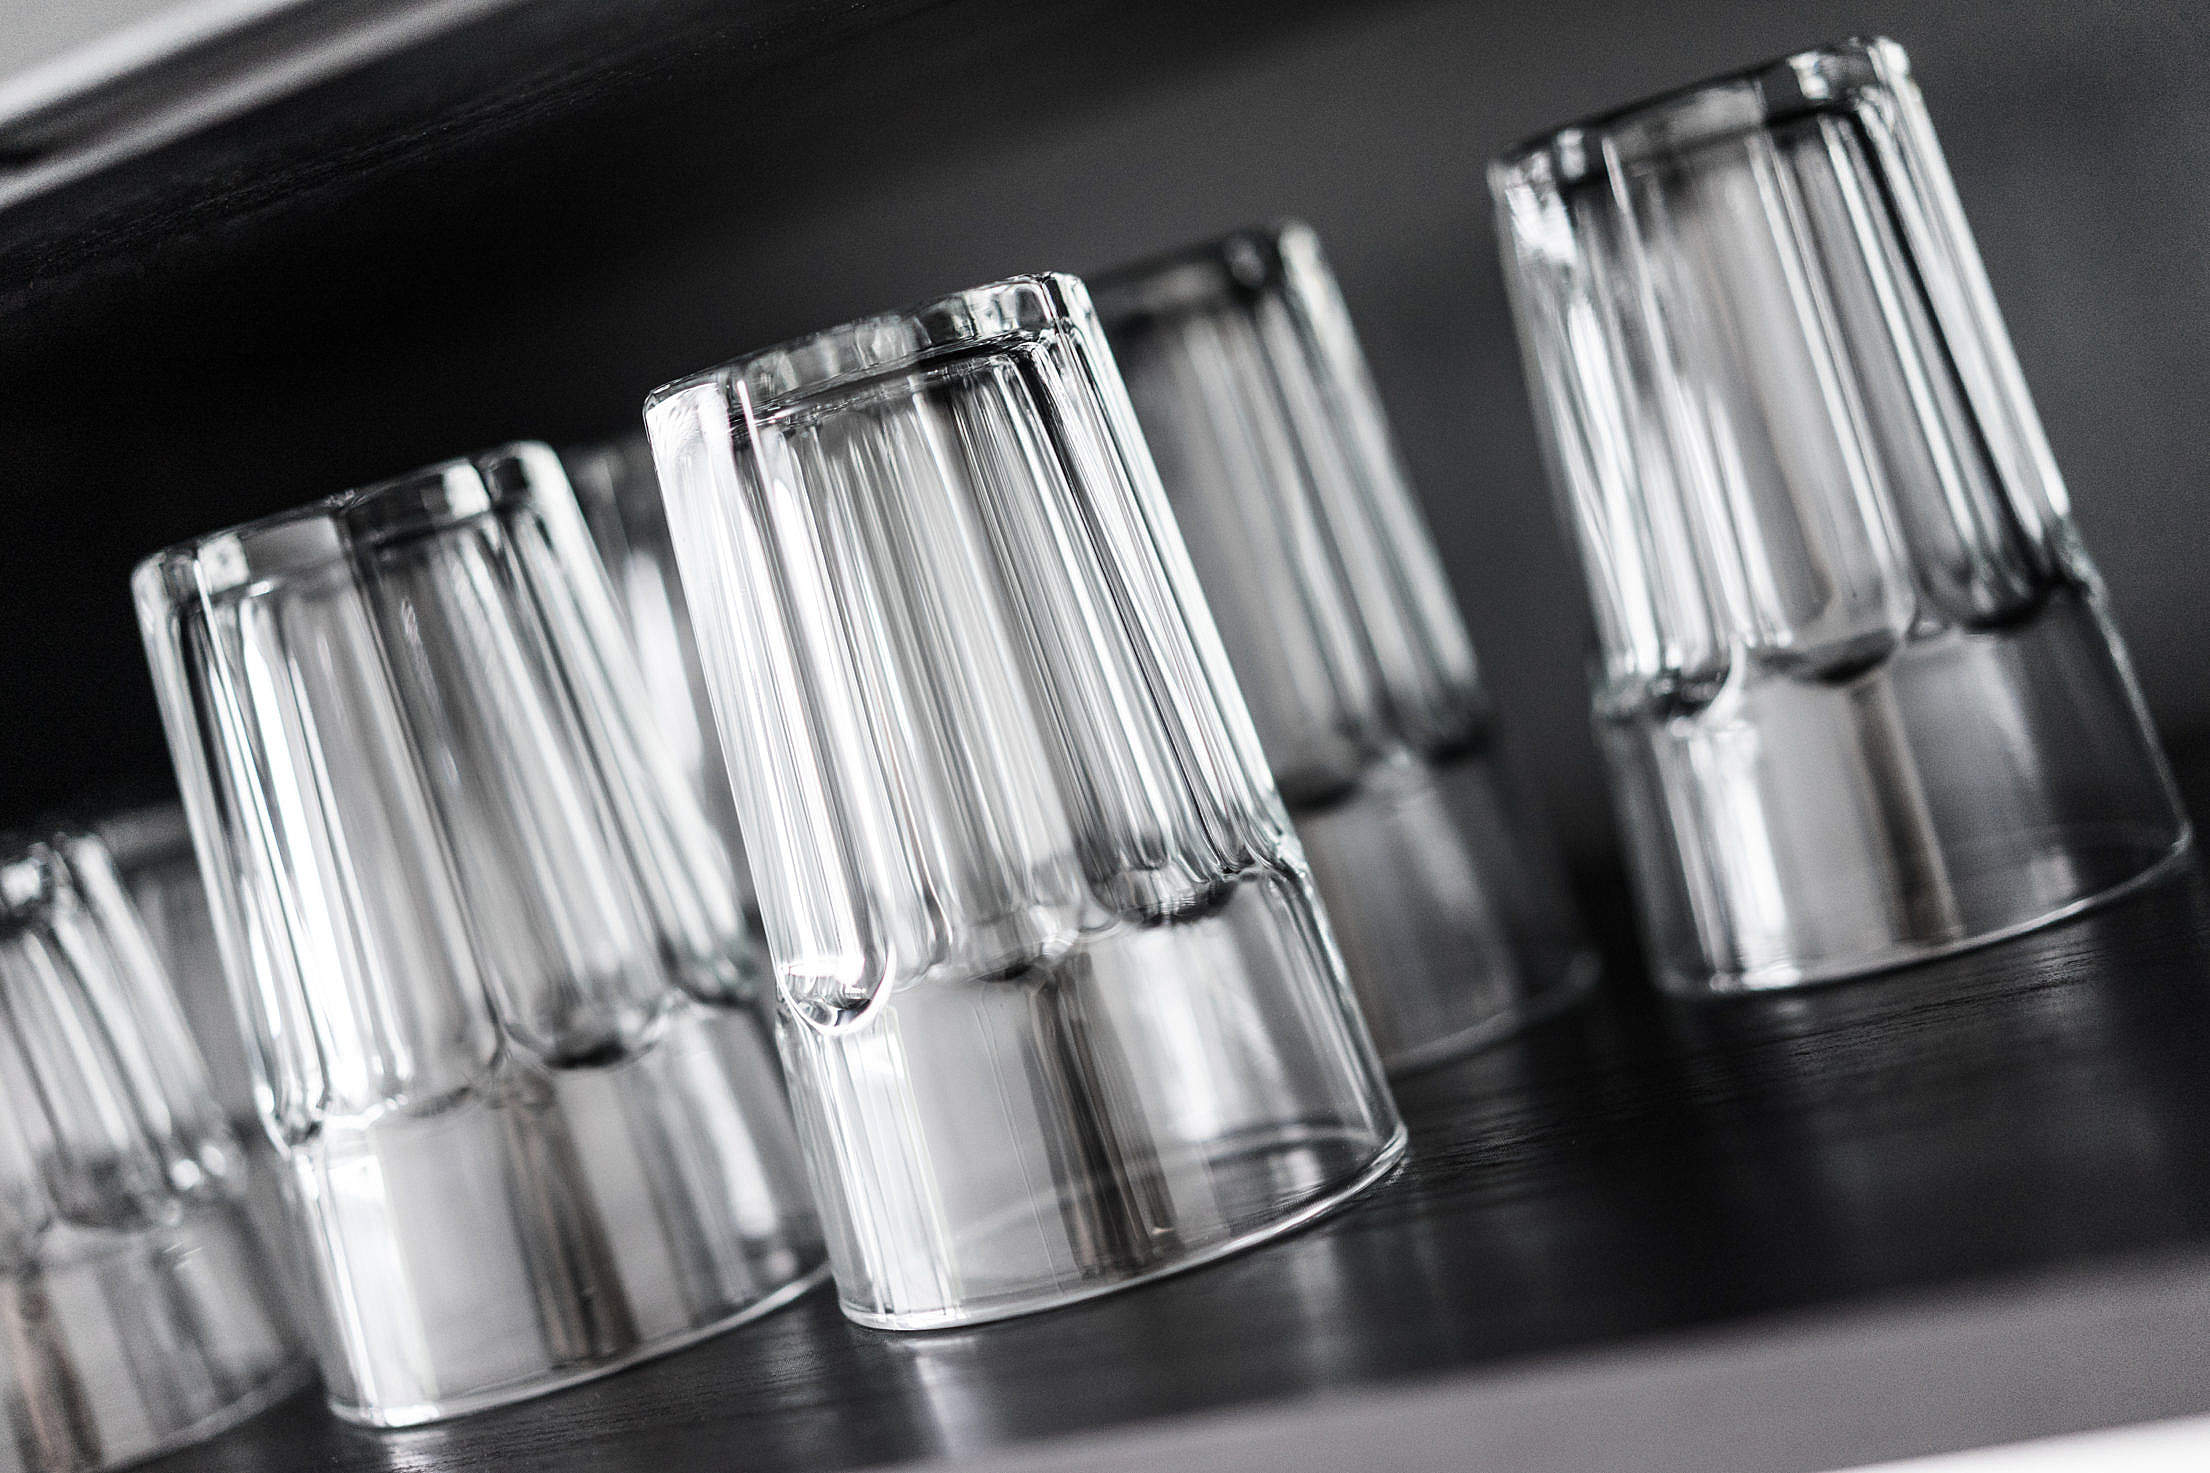 Drinking Glasses in Kitchen Shelf Free Stock Photo